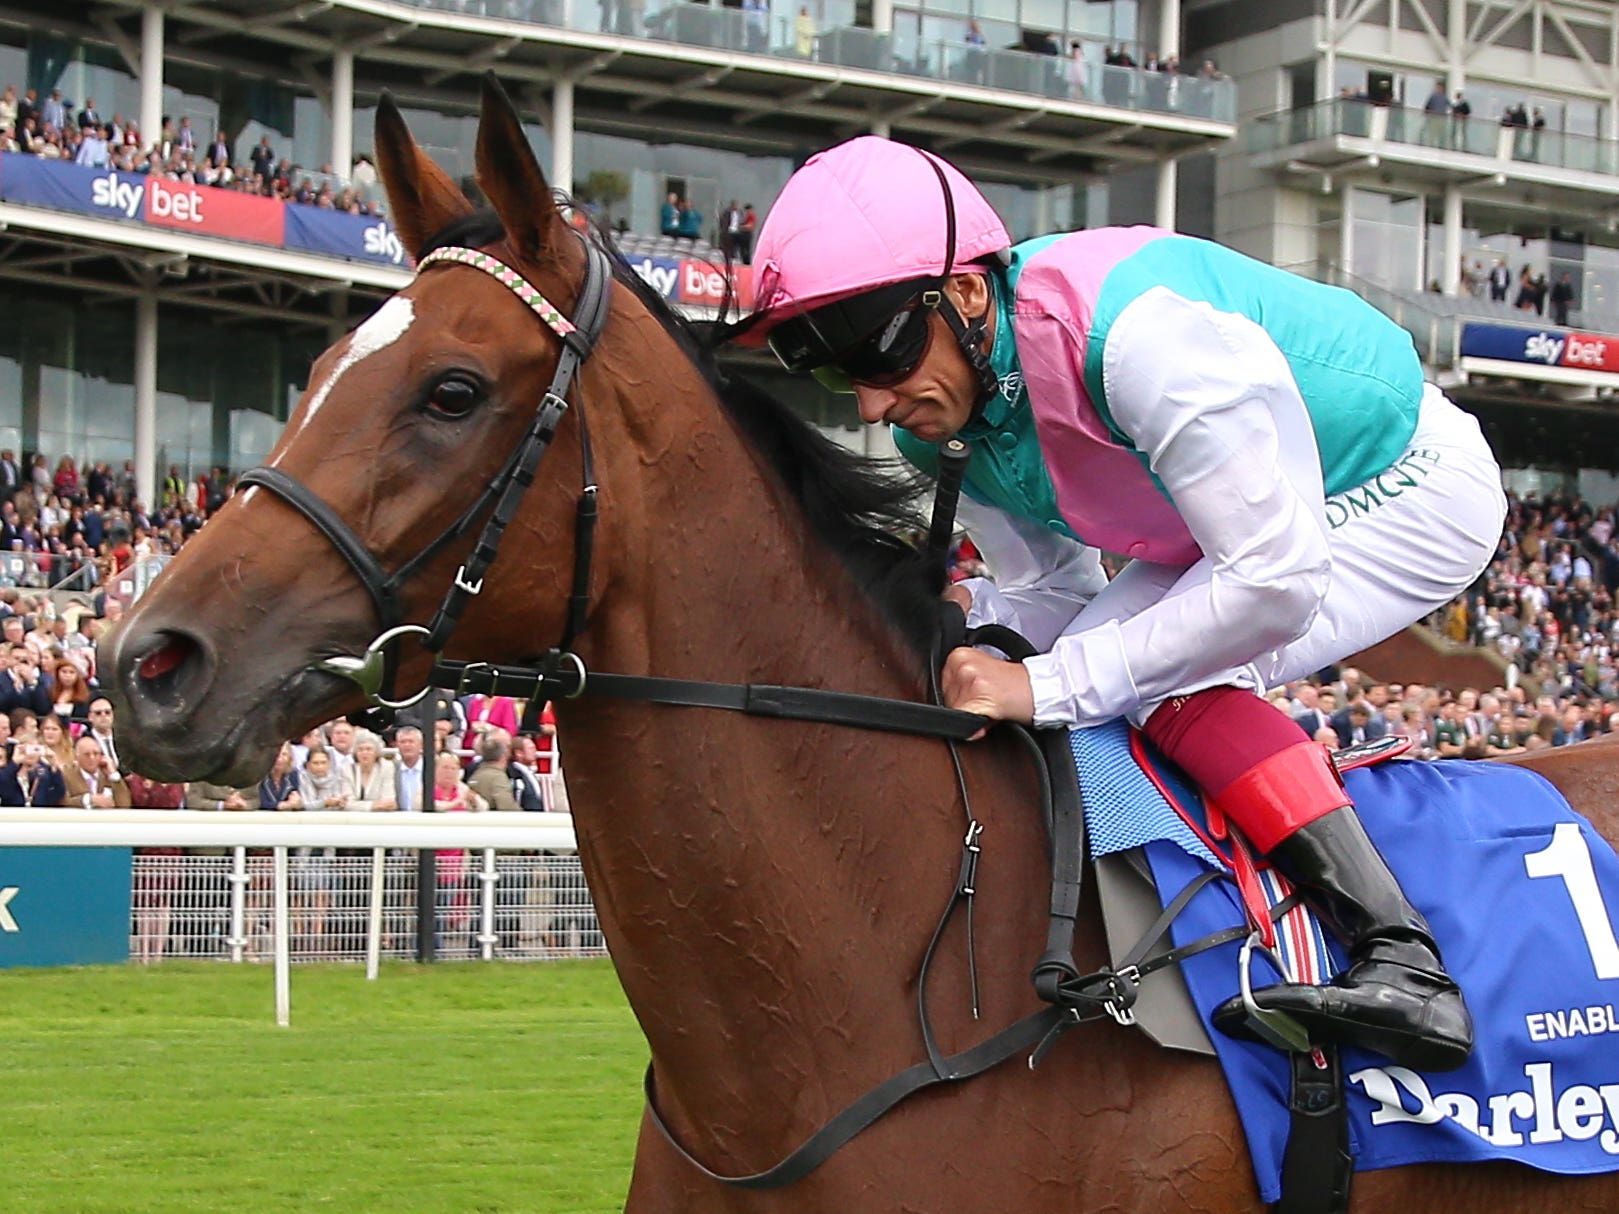 Enable and Frankie Dettori win the Darley Yorkshire Oaks – the mare's 13th career win (Nigel French/PA)